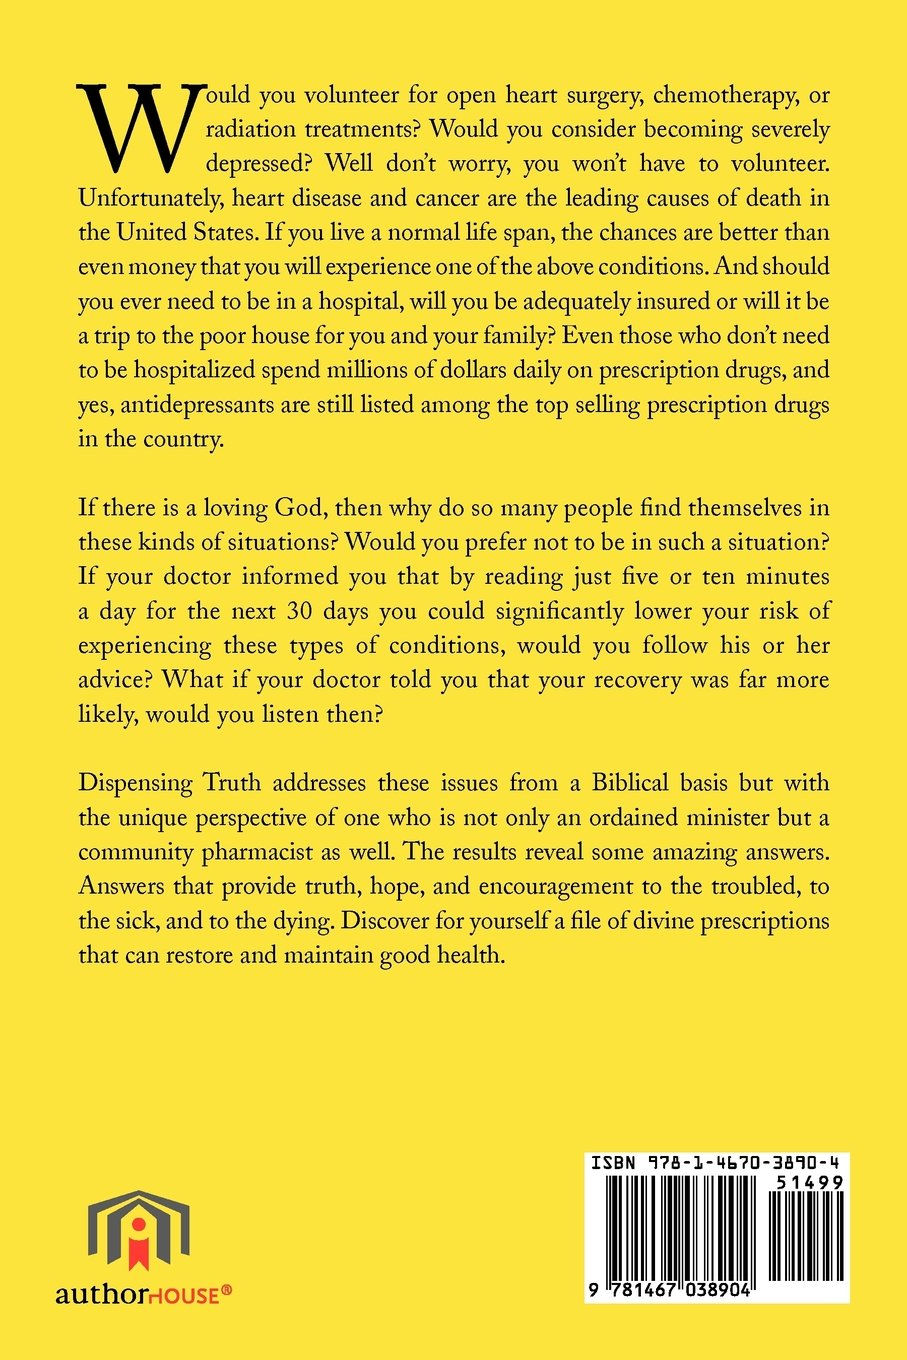 DISPENSING TRUTH: Divine Prescriptions  to Restore and Maintain Good Health